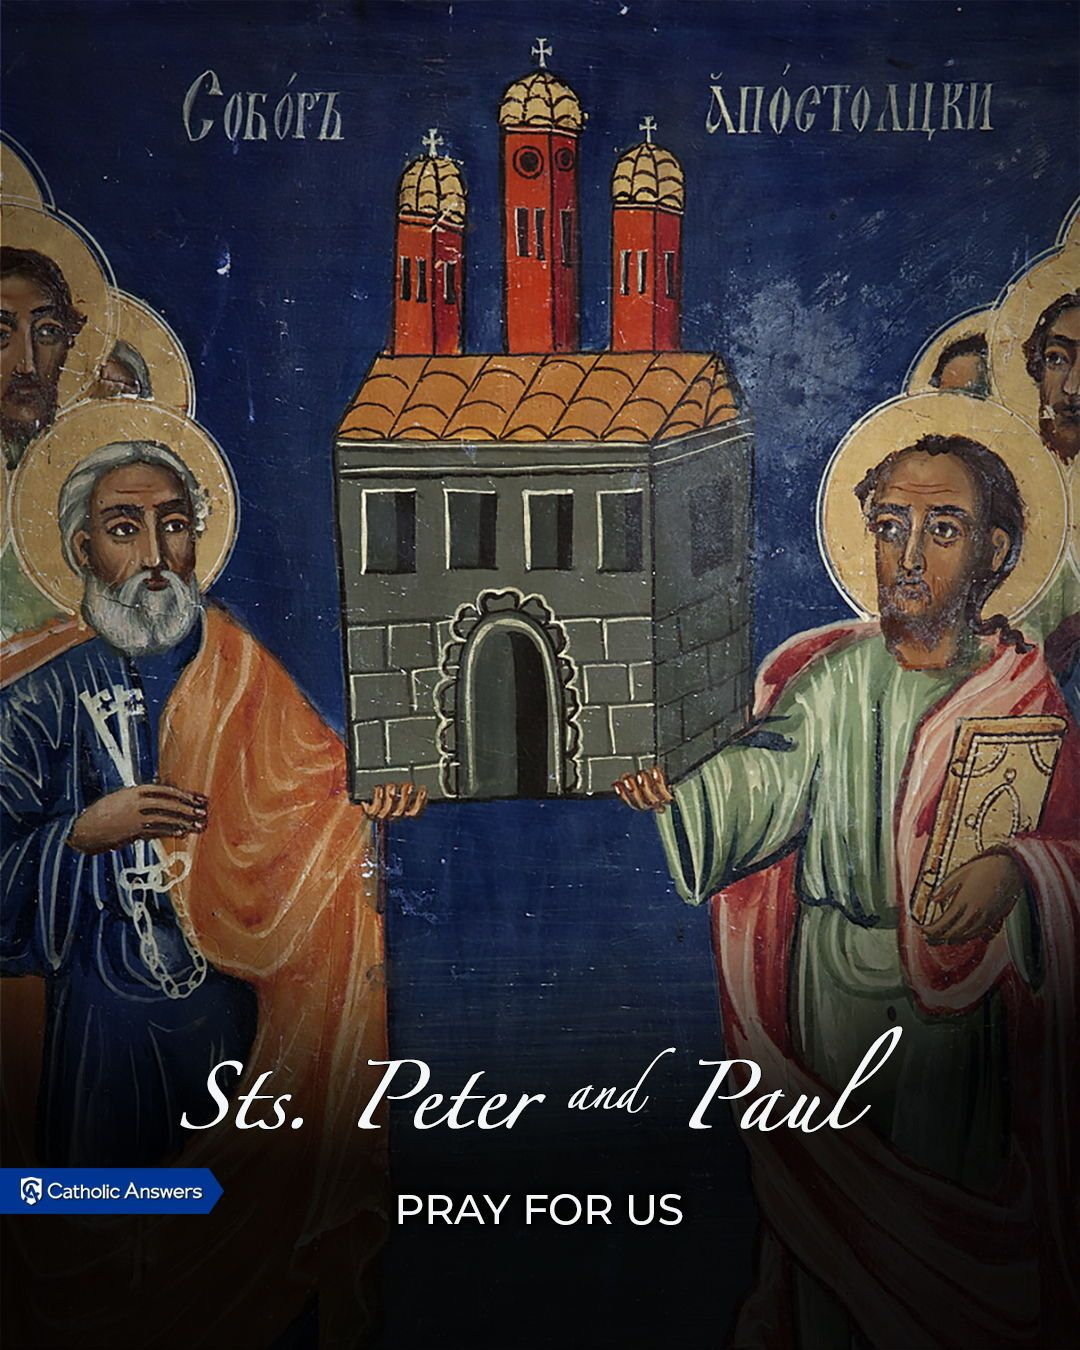 June 29th The Solemnity of Sts. Peter and Paul. saint